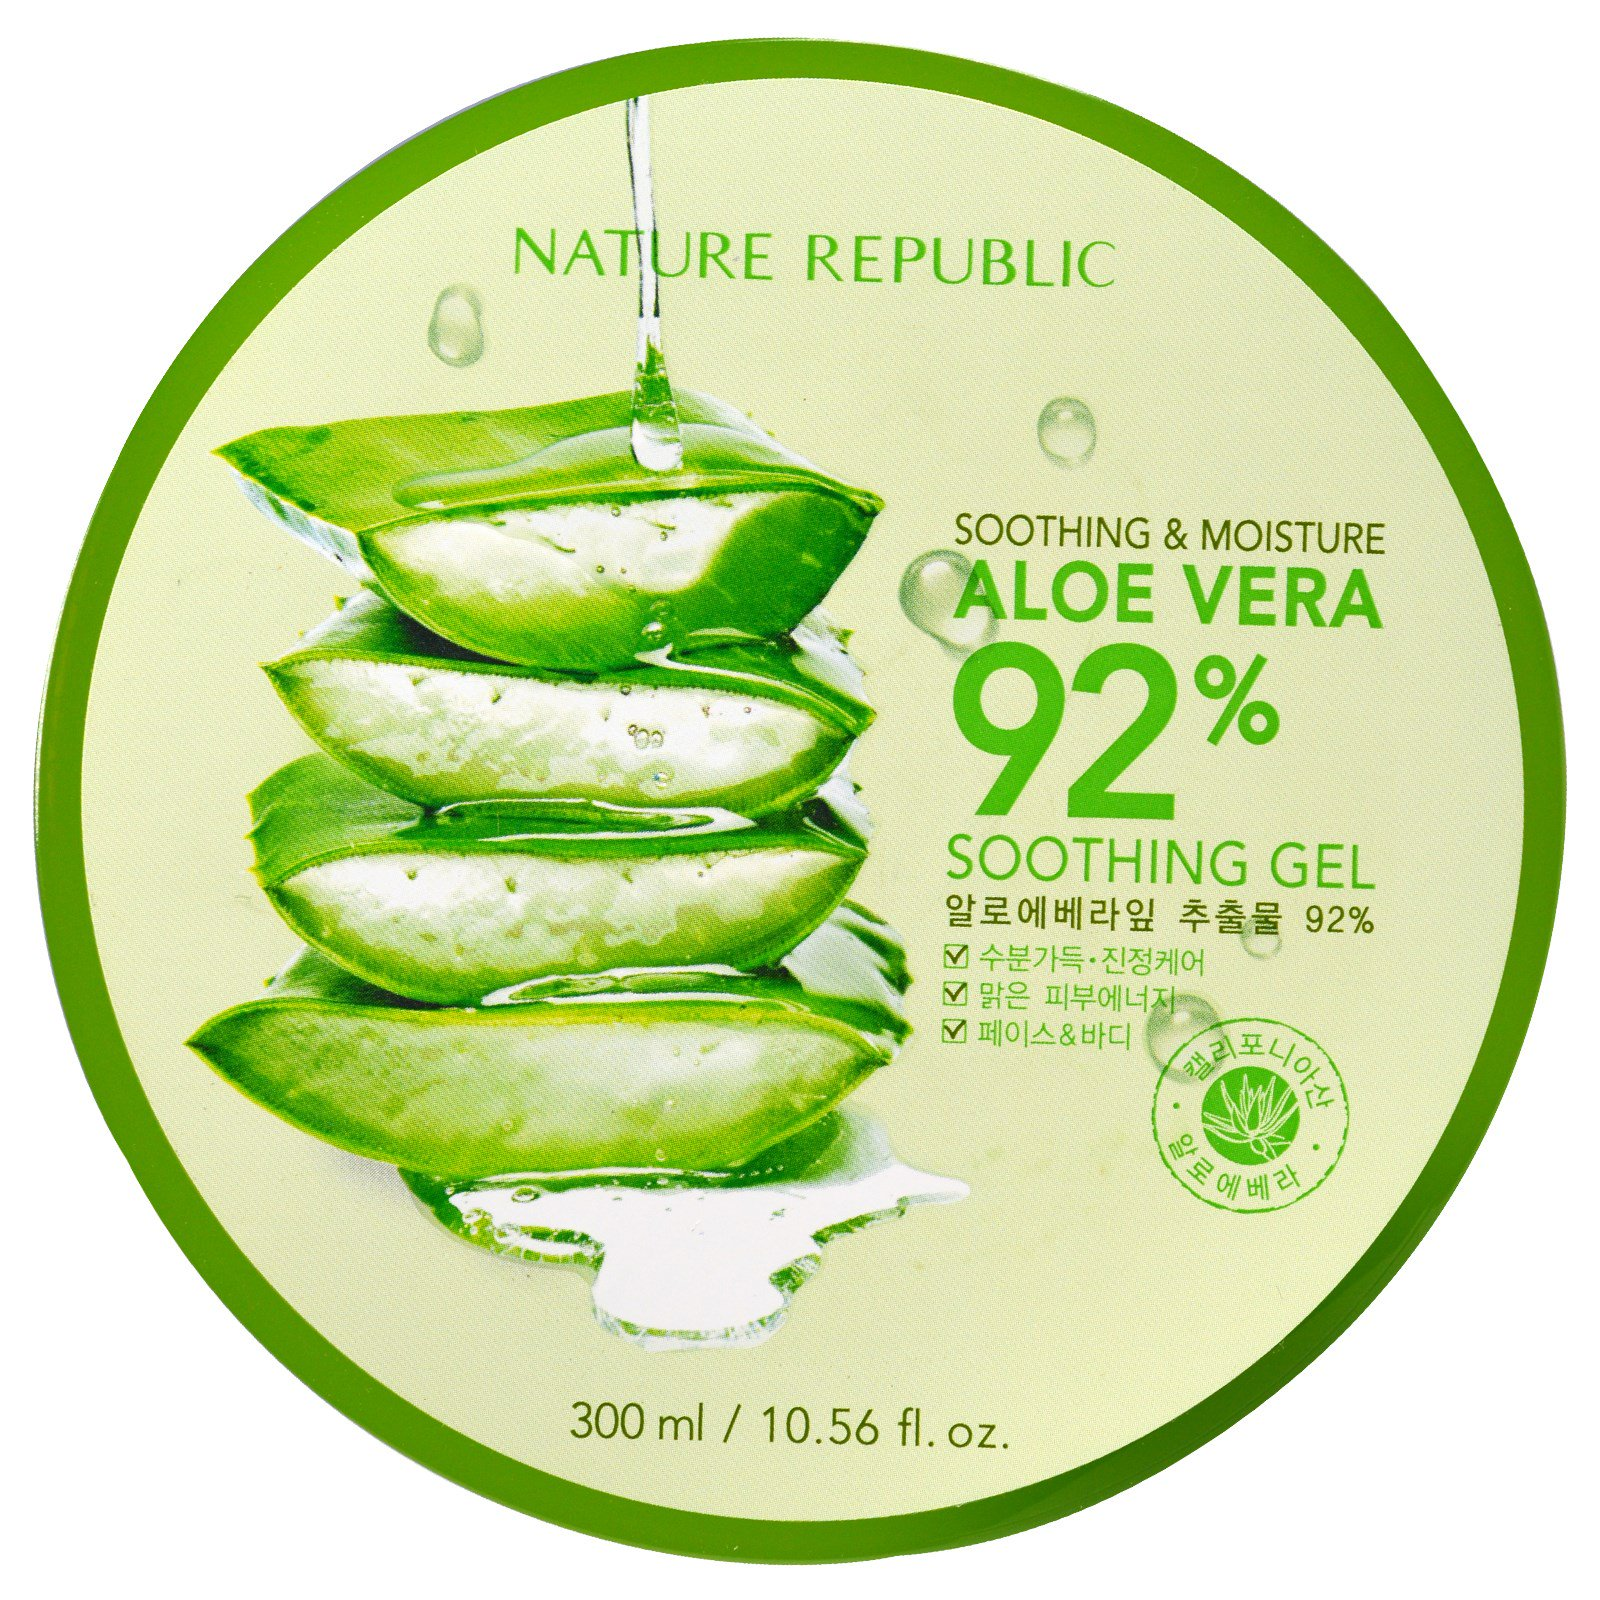 Alo Vera Nature Republic Soothing Moisture Aloe Vera 92 Soothing Gel 10 56 Fl Oz 300 Ml